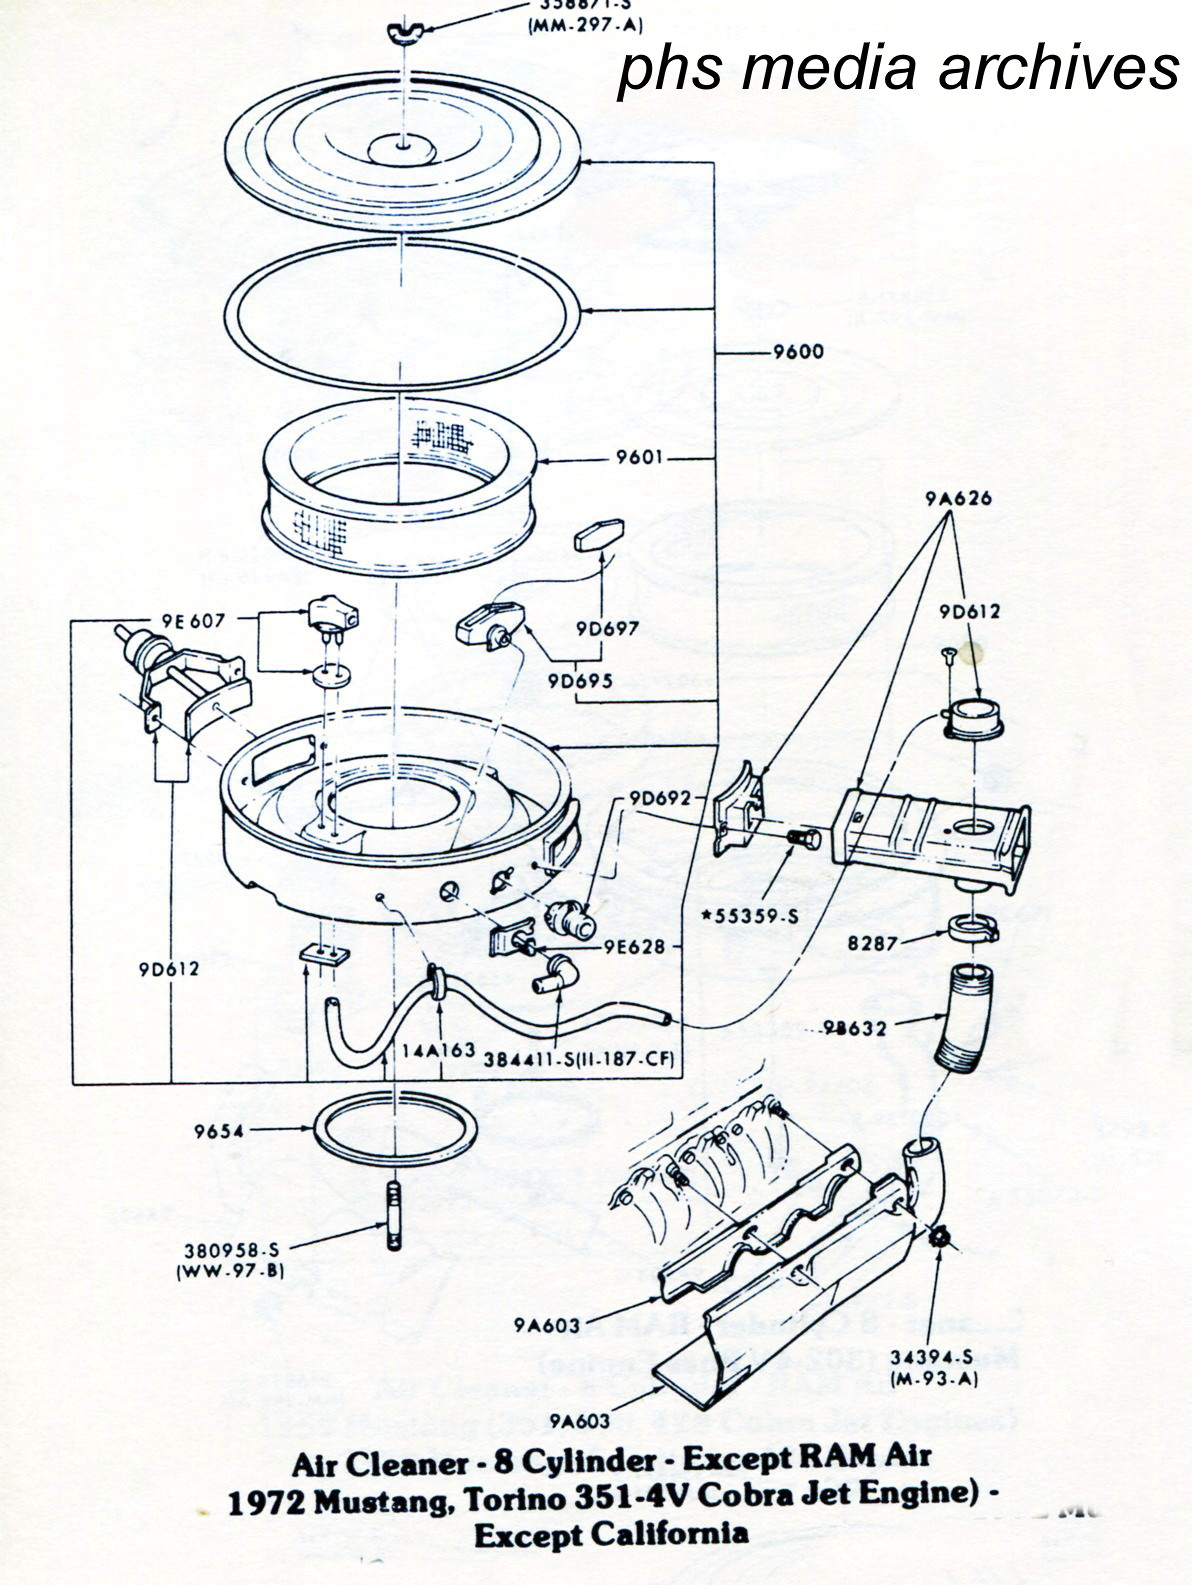 phscollectorcarworld october 2016 VW Air Cooled tech series ford mustang air cleaner id guide 1971 1973